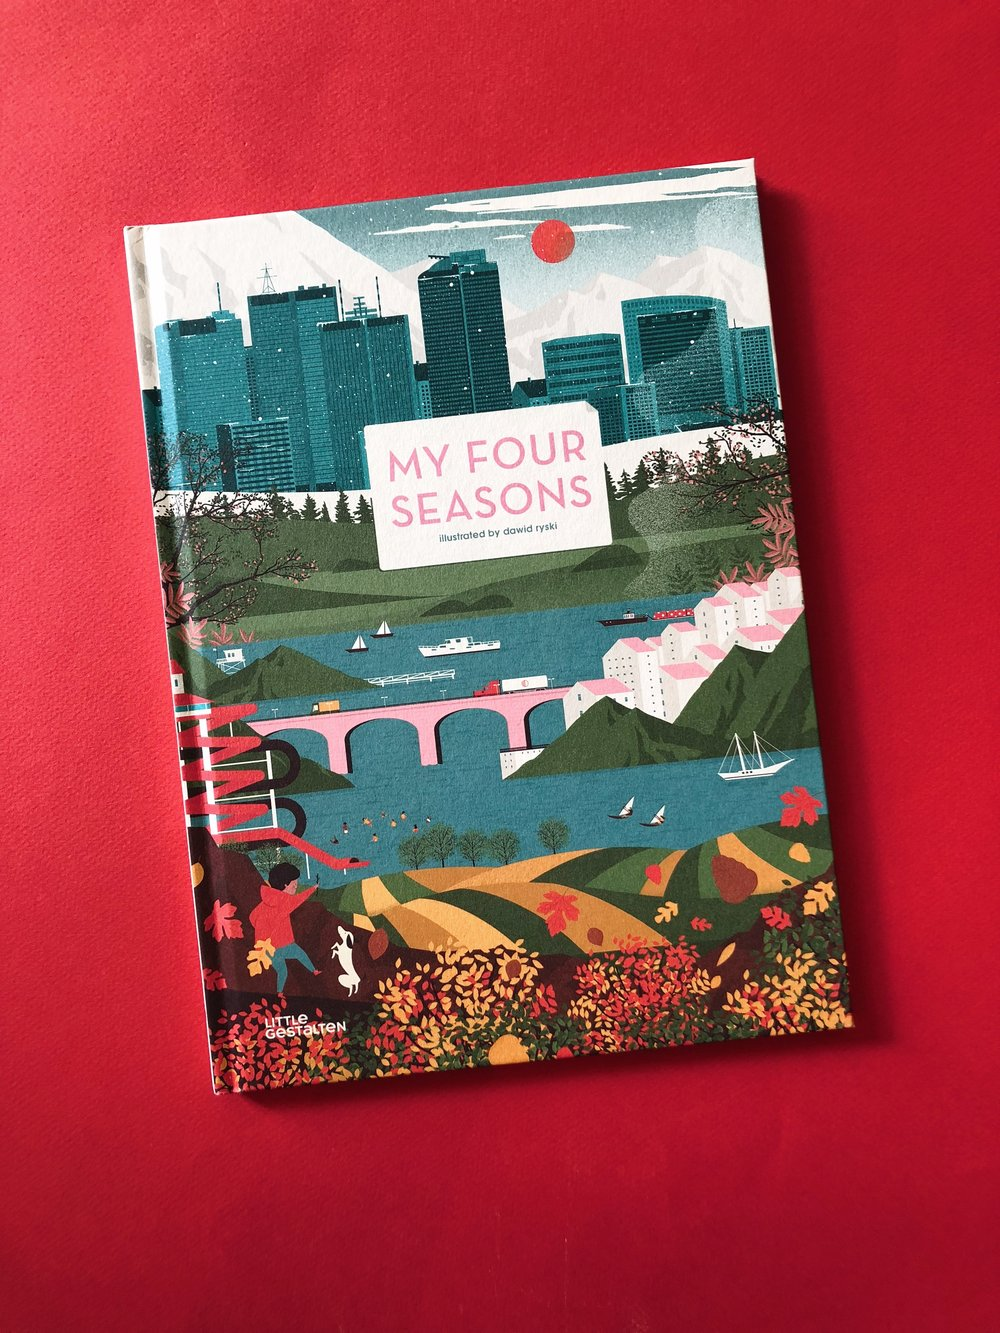 My Four Seasons - A story about Spring, Summer, Fall, and Winter.